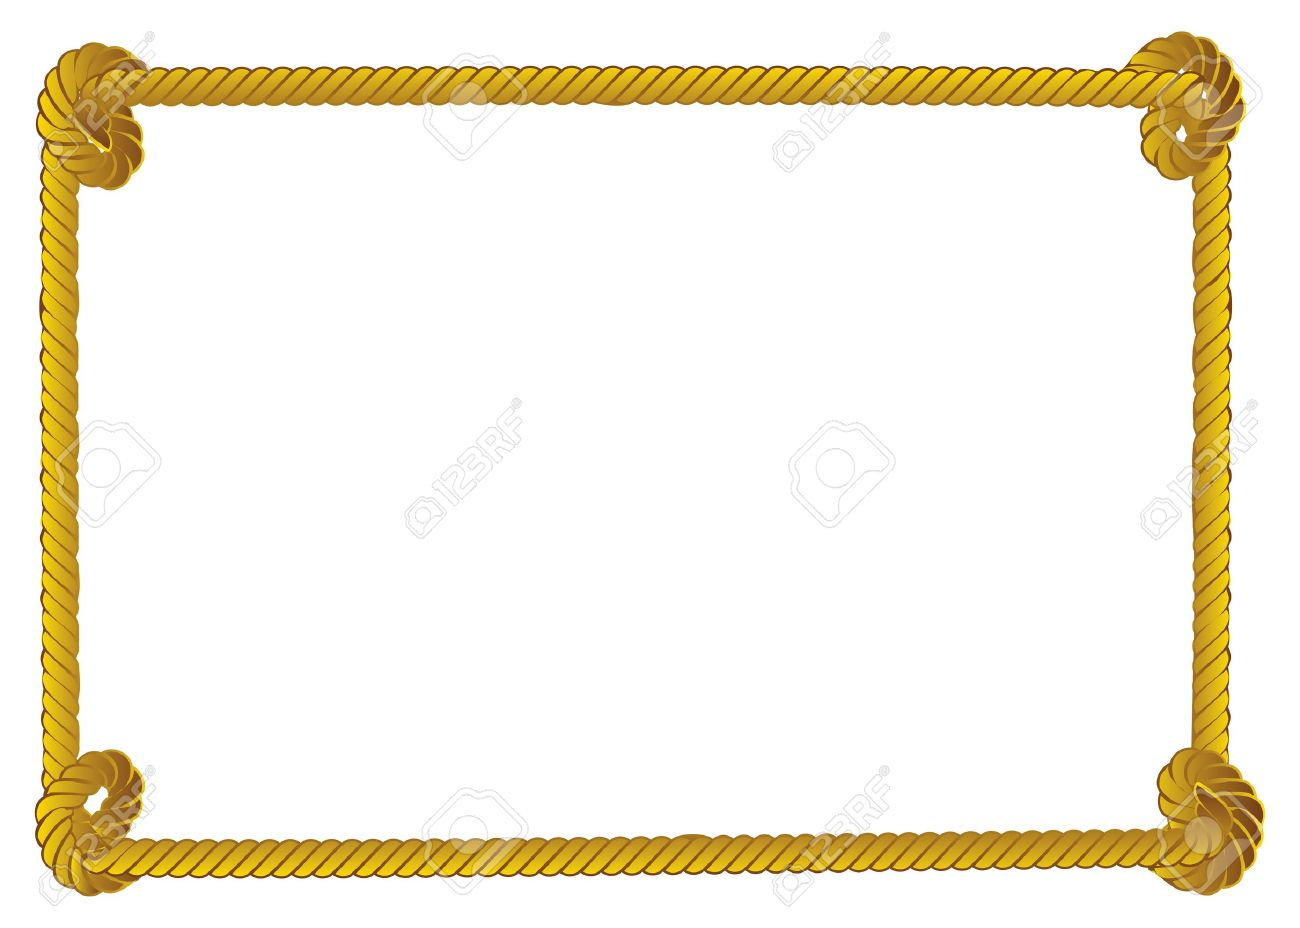 yellow rope frame border on white background stock vector 18182436